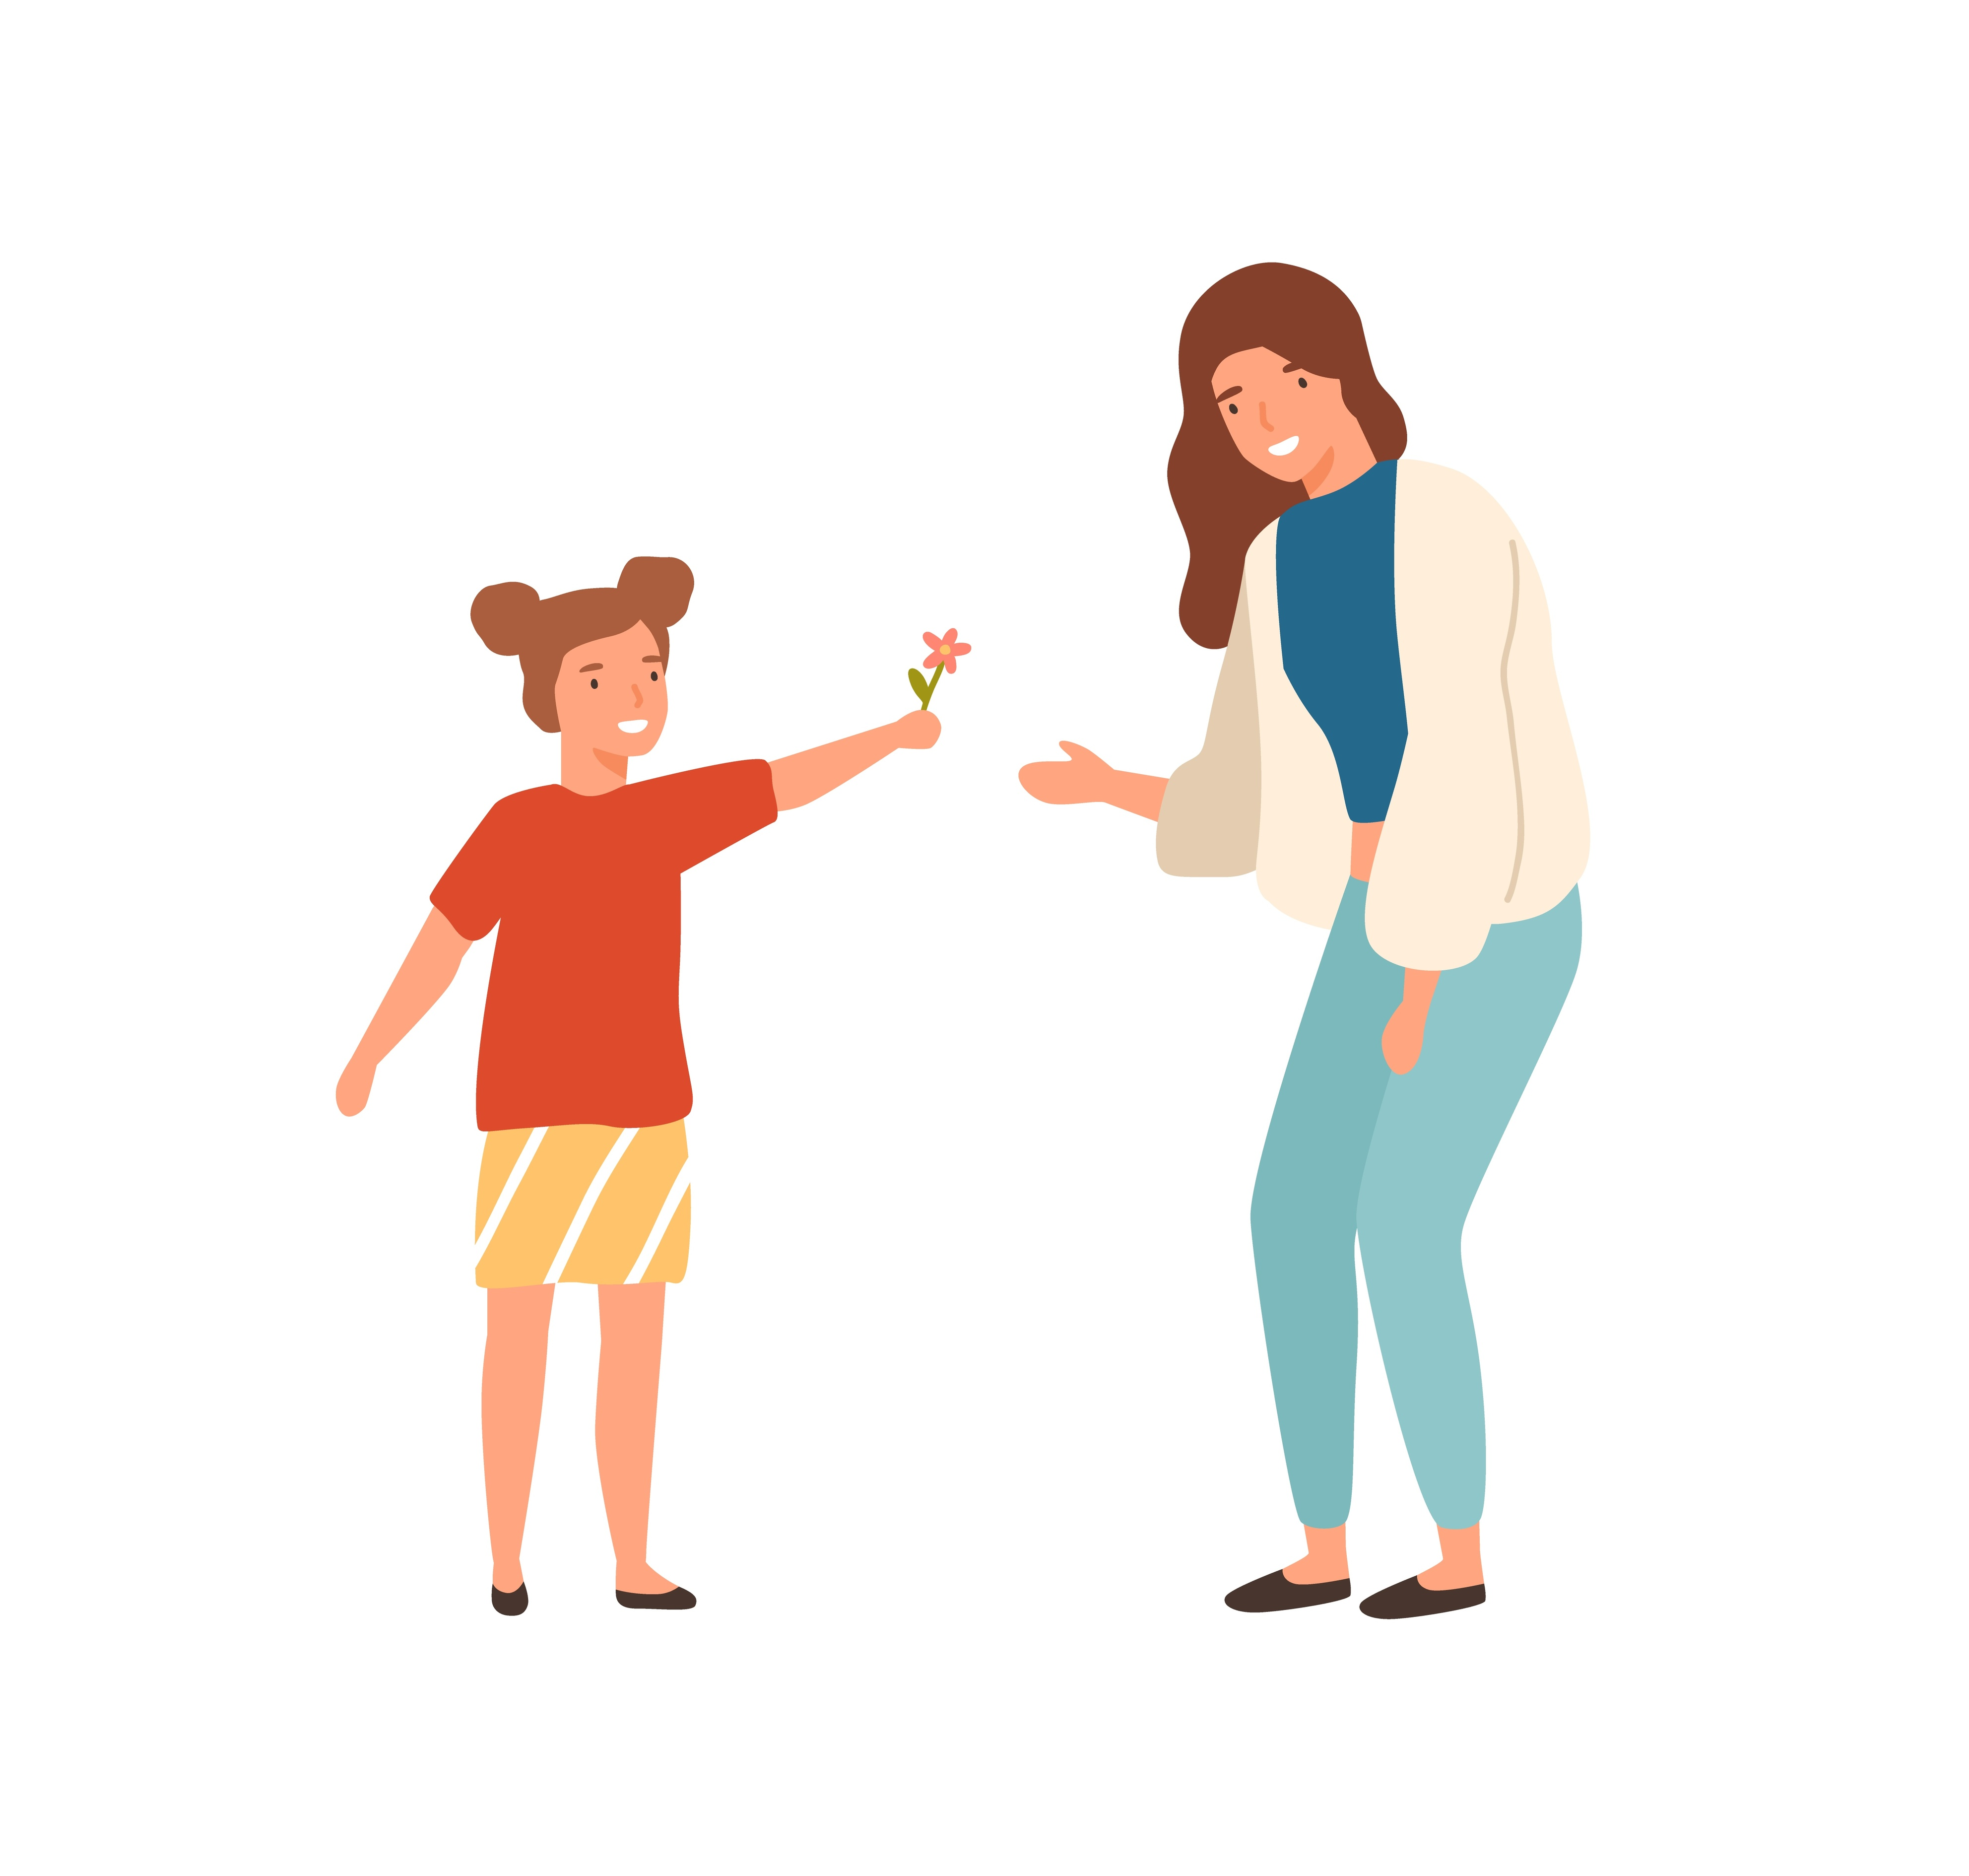 Illustration of a young child holding out a flower to their mother.